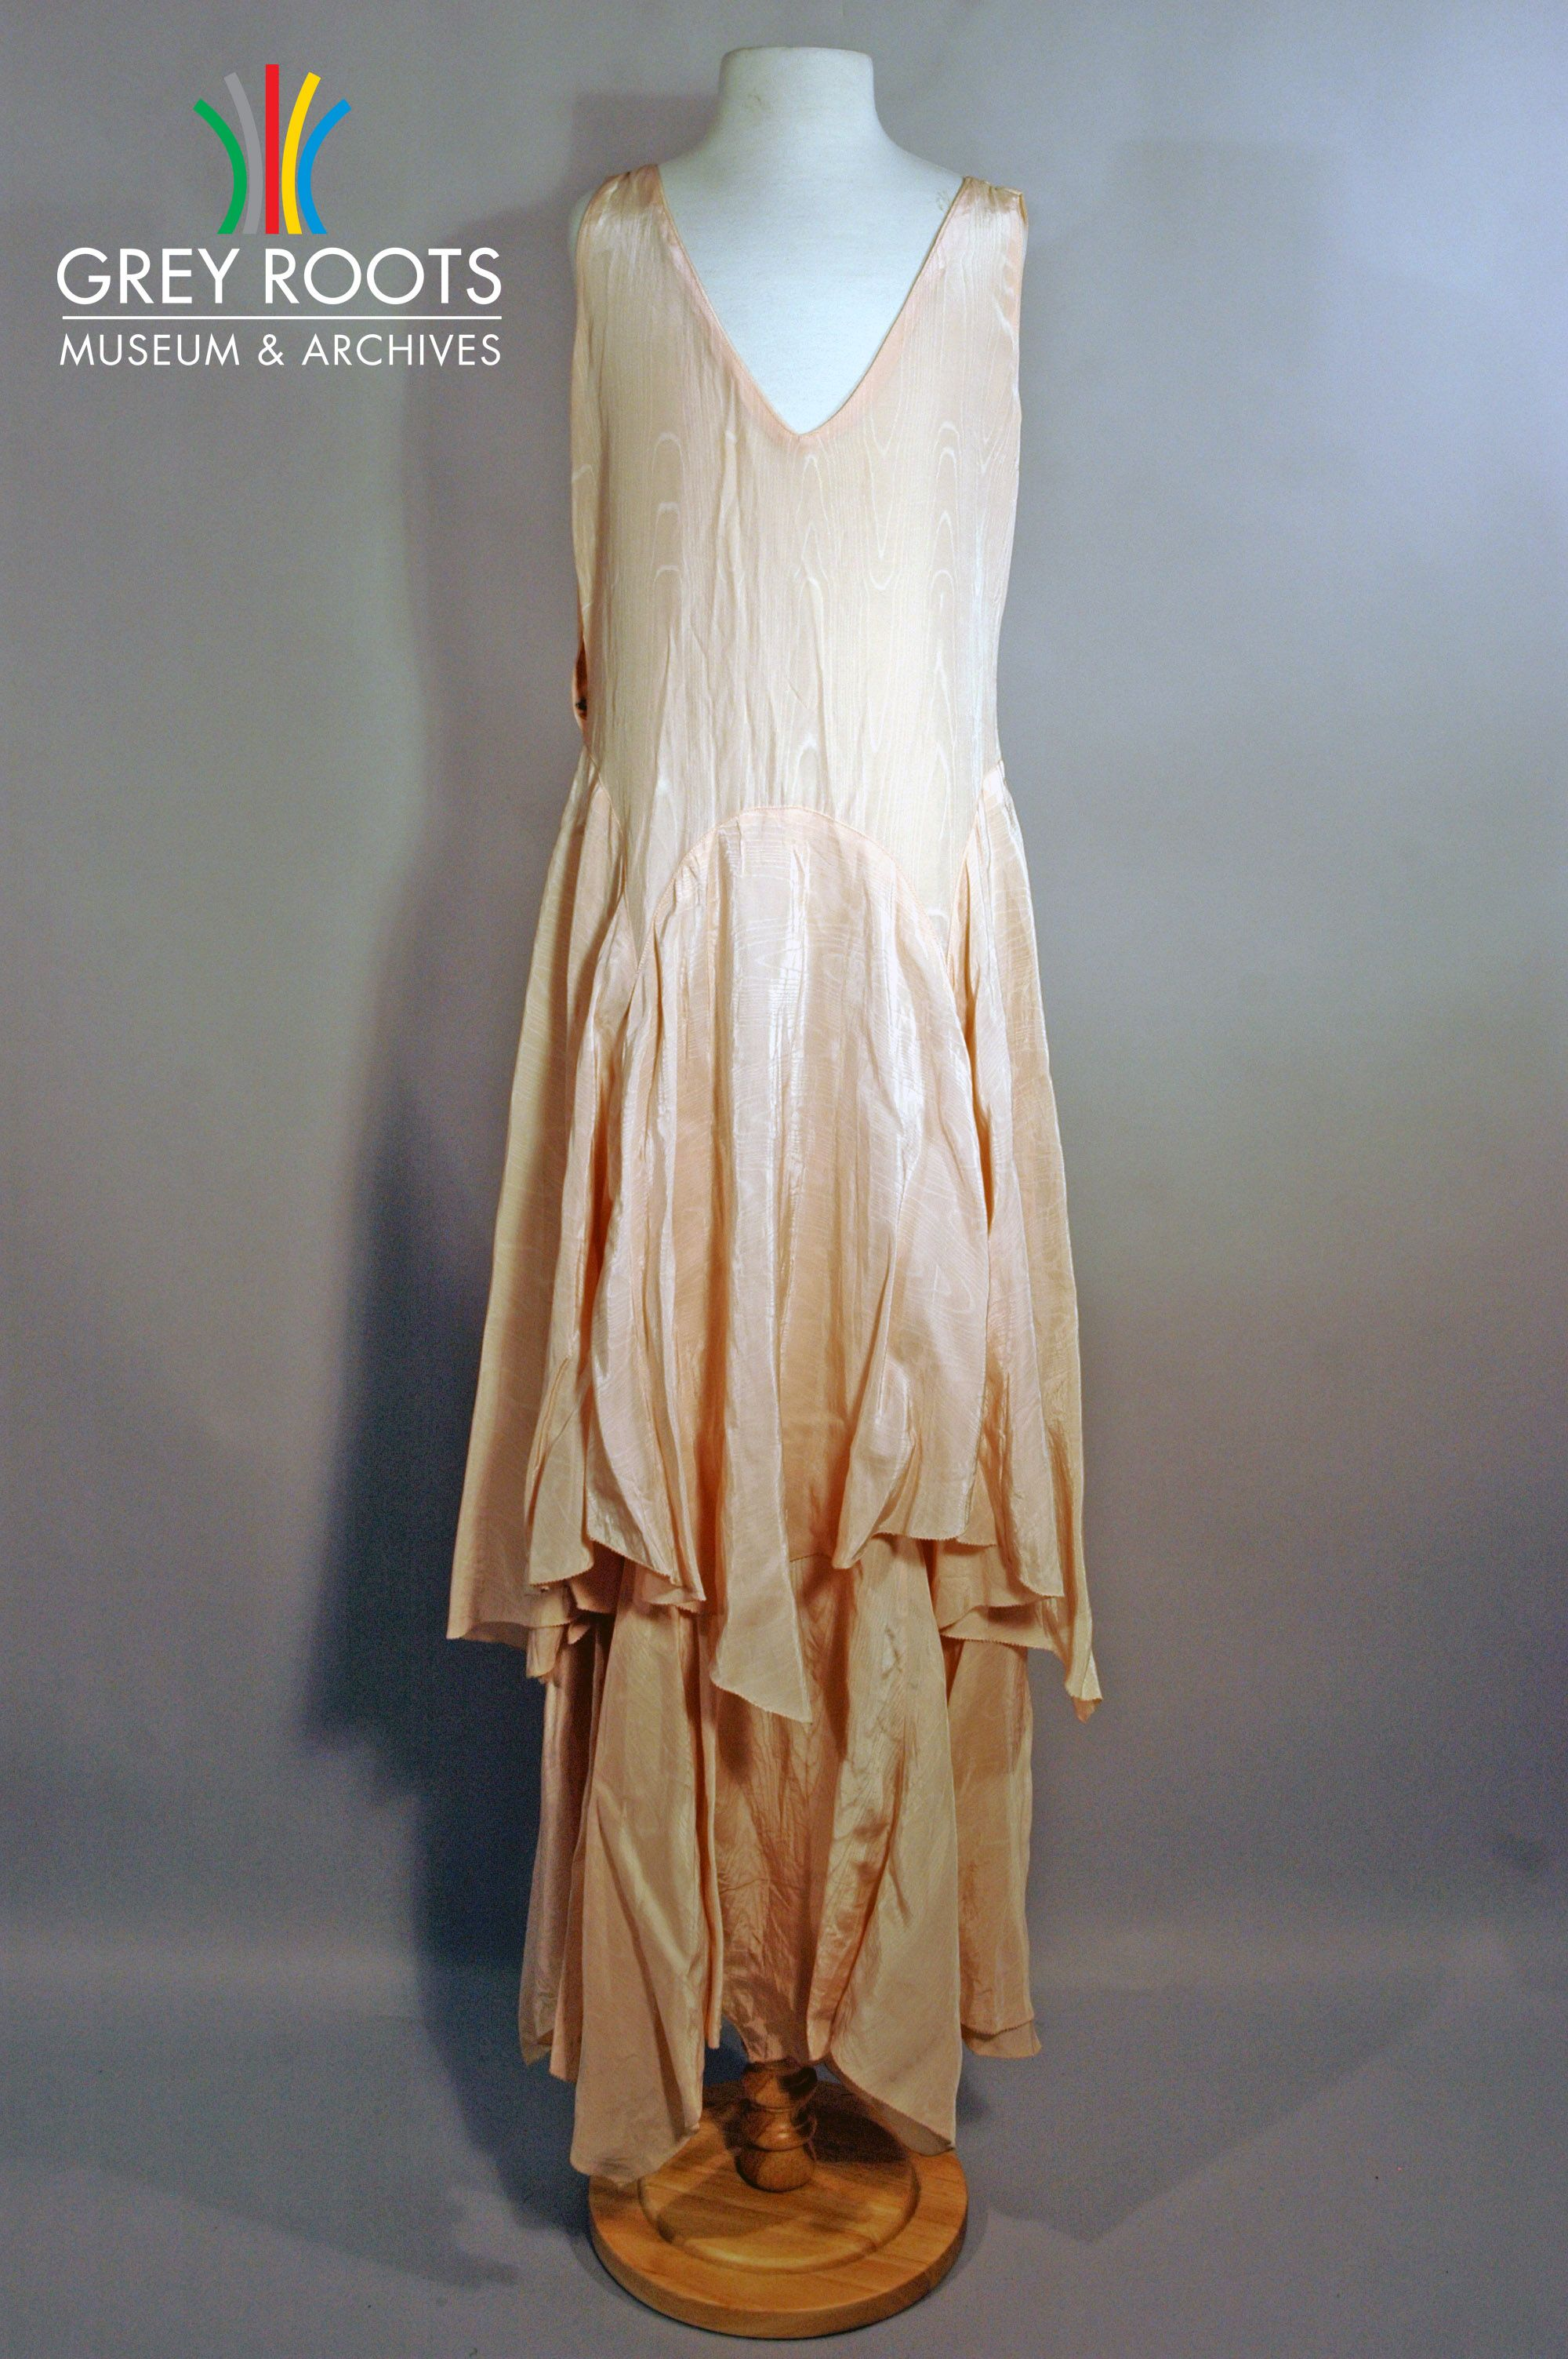 A long, pink, moire evening dress which features a double skirt and a v-neck. Grey Roots Museum & Archives Collection.